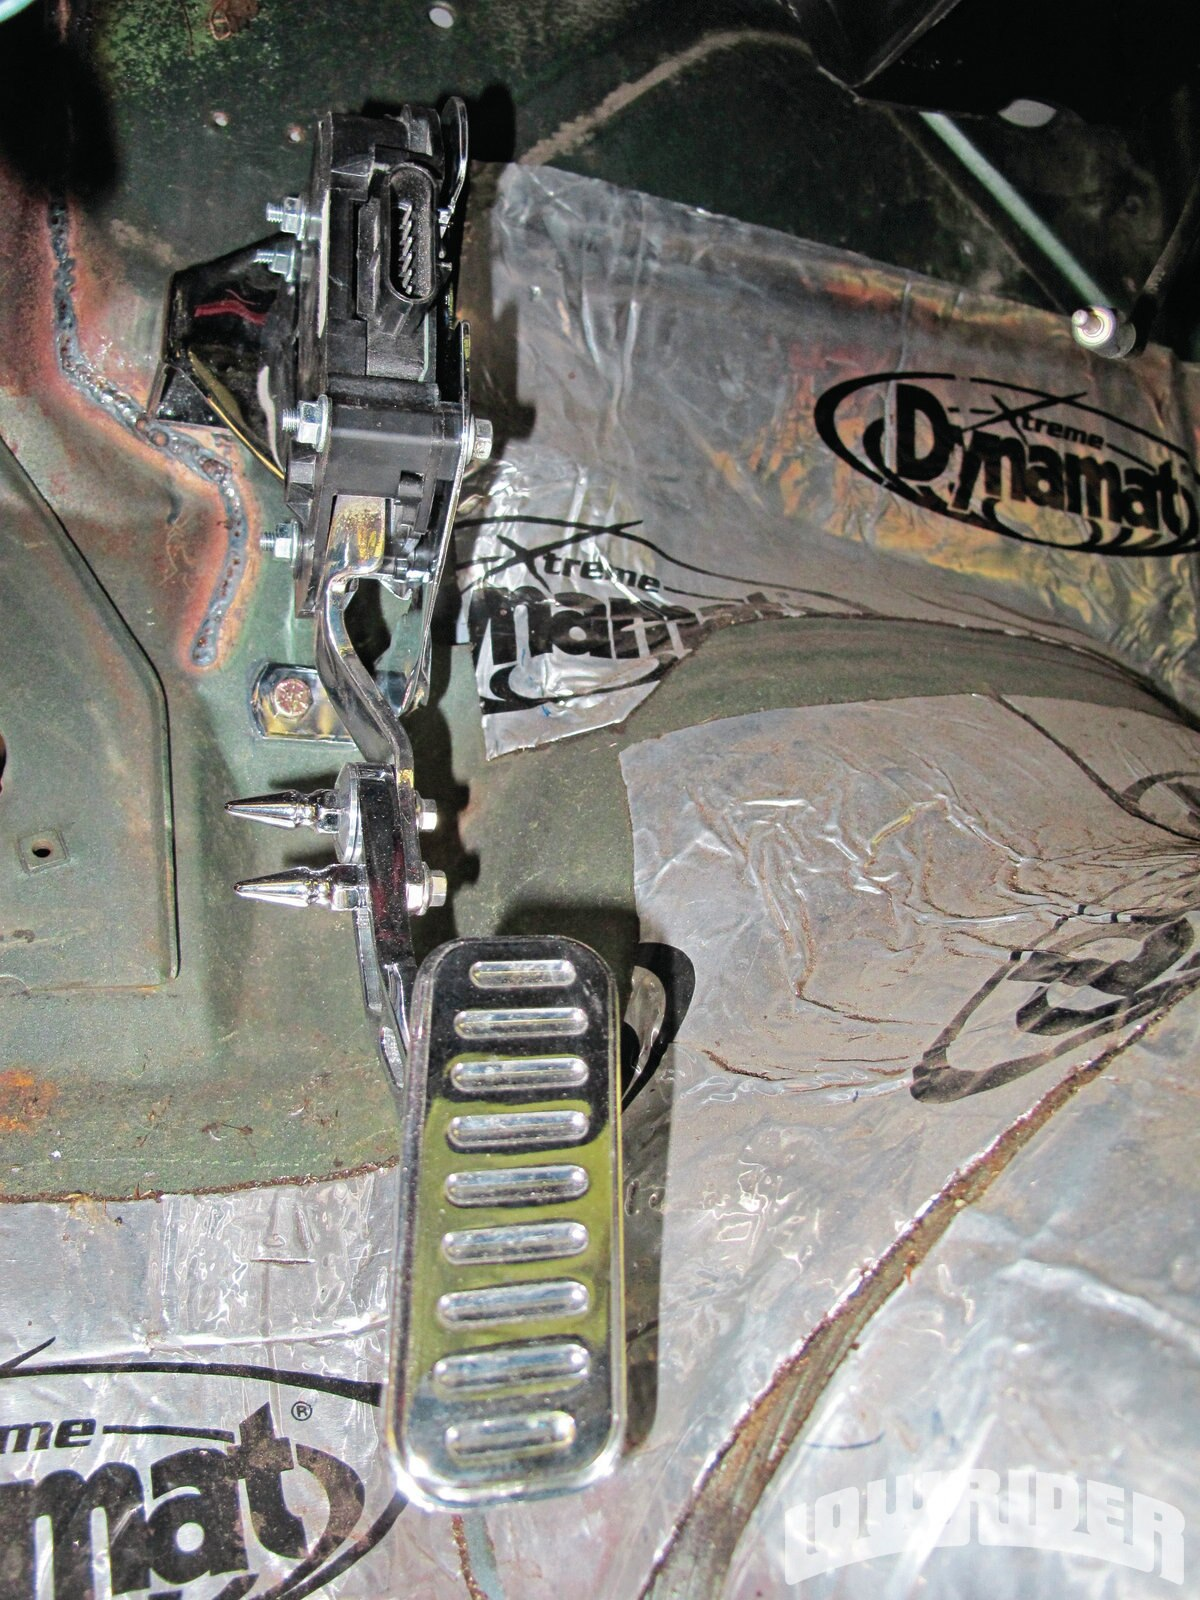 <strong>15</strong>. The Lokar drive by wire gas pedal was mounted and ready to be plugged in.